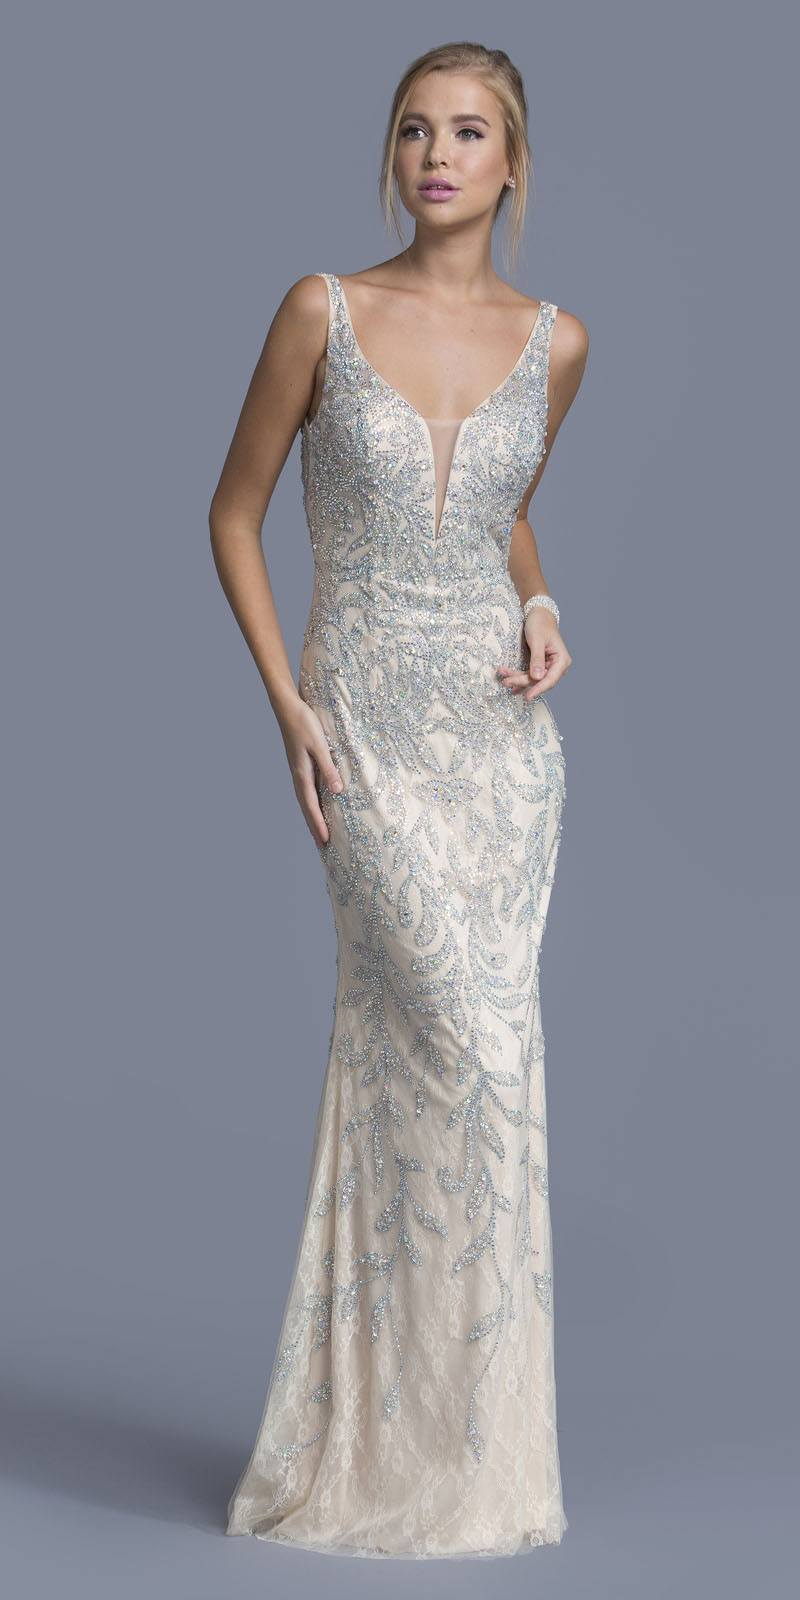 Aspeed Usa L2021 Rhinestone Embellished Lace Prom Gown V Back